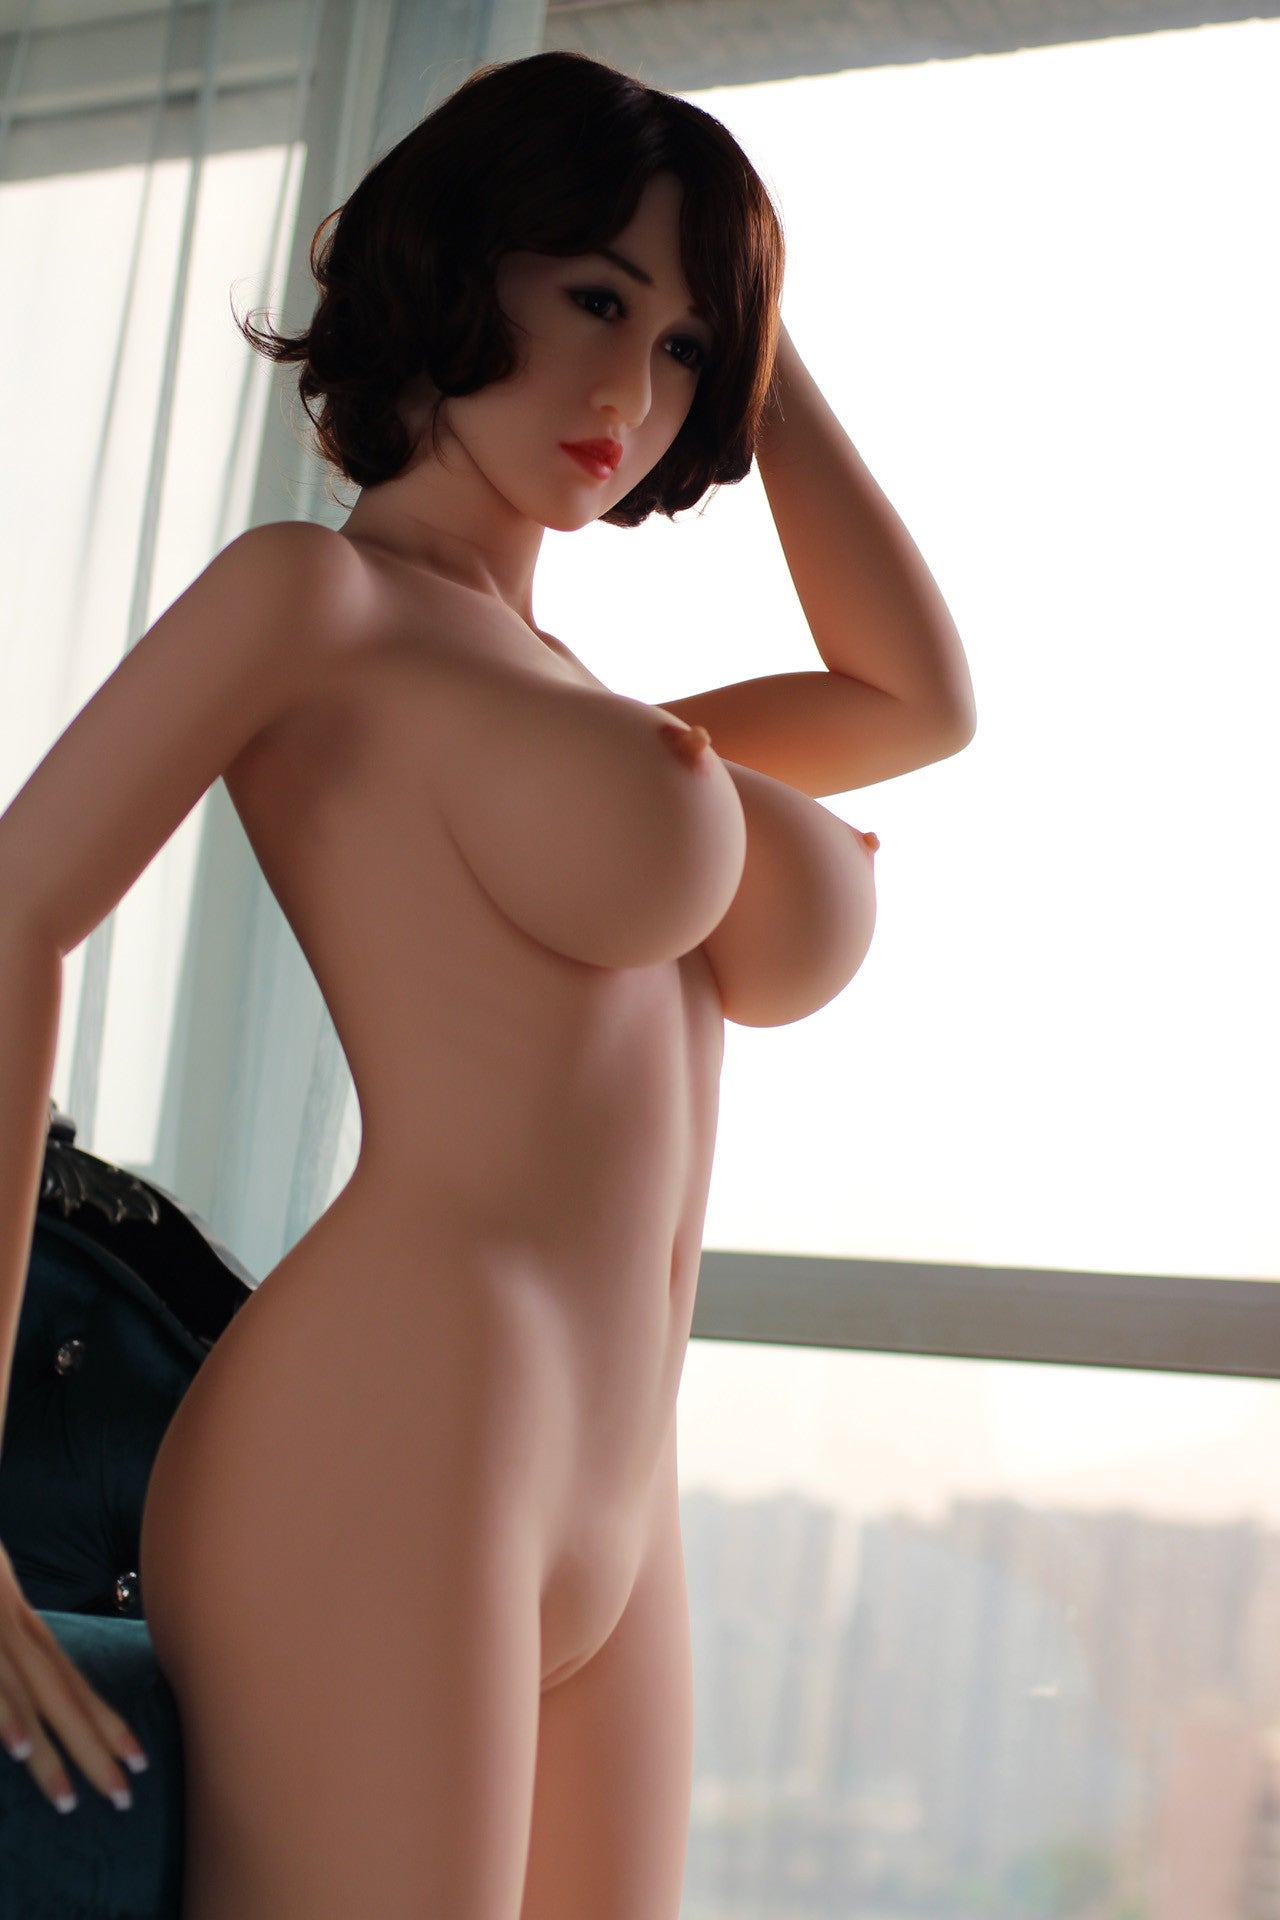 Japanese Sex Doll Pictures